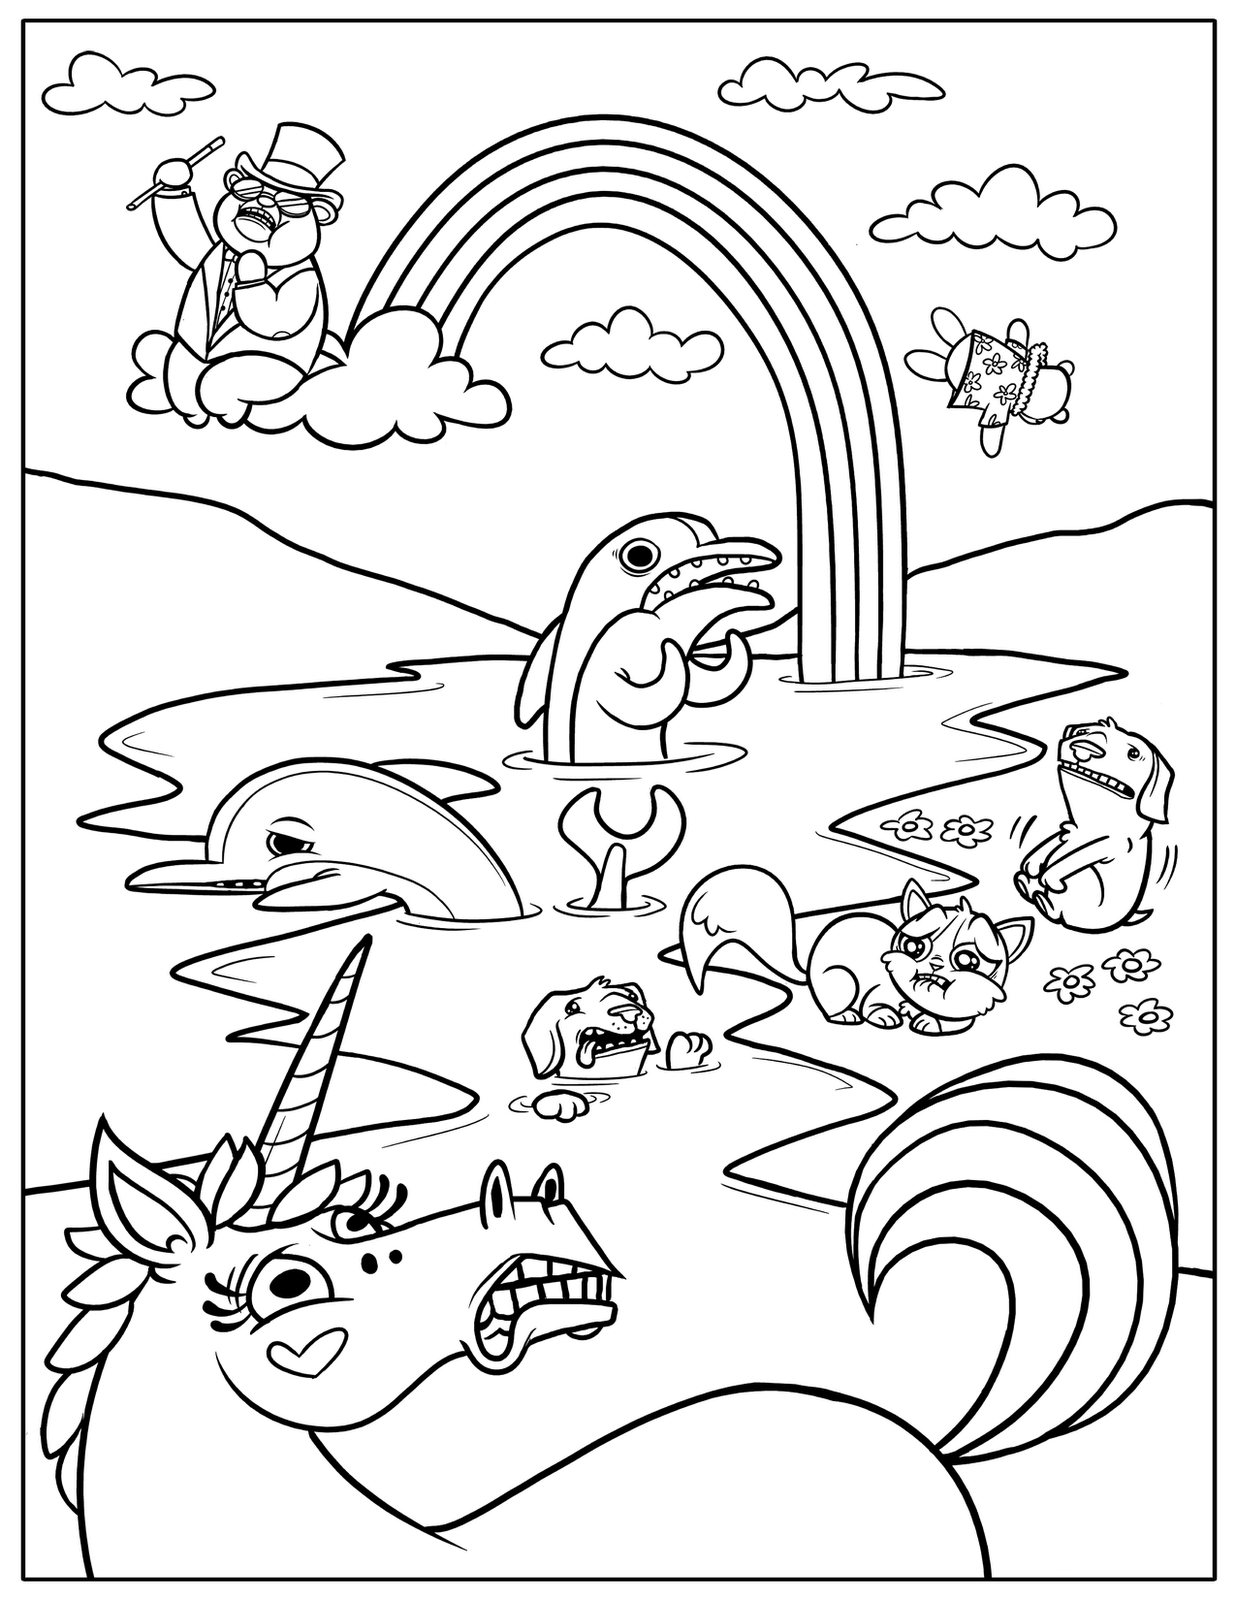 coloring picture printable free printable rainbow coloring pages for kids coloring picture printable